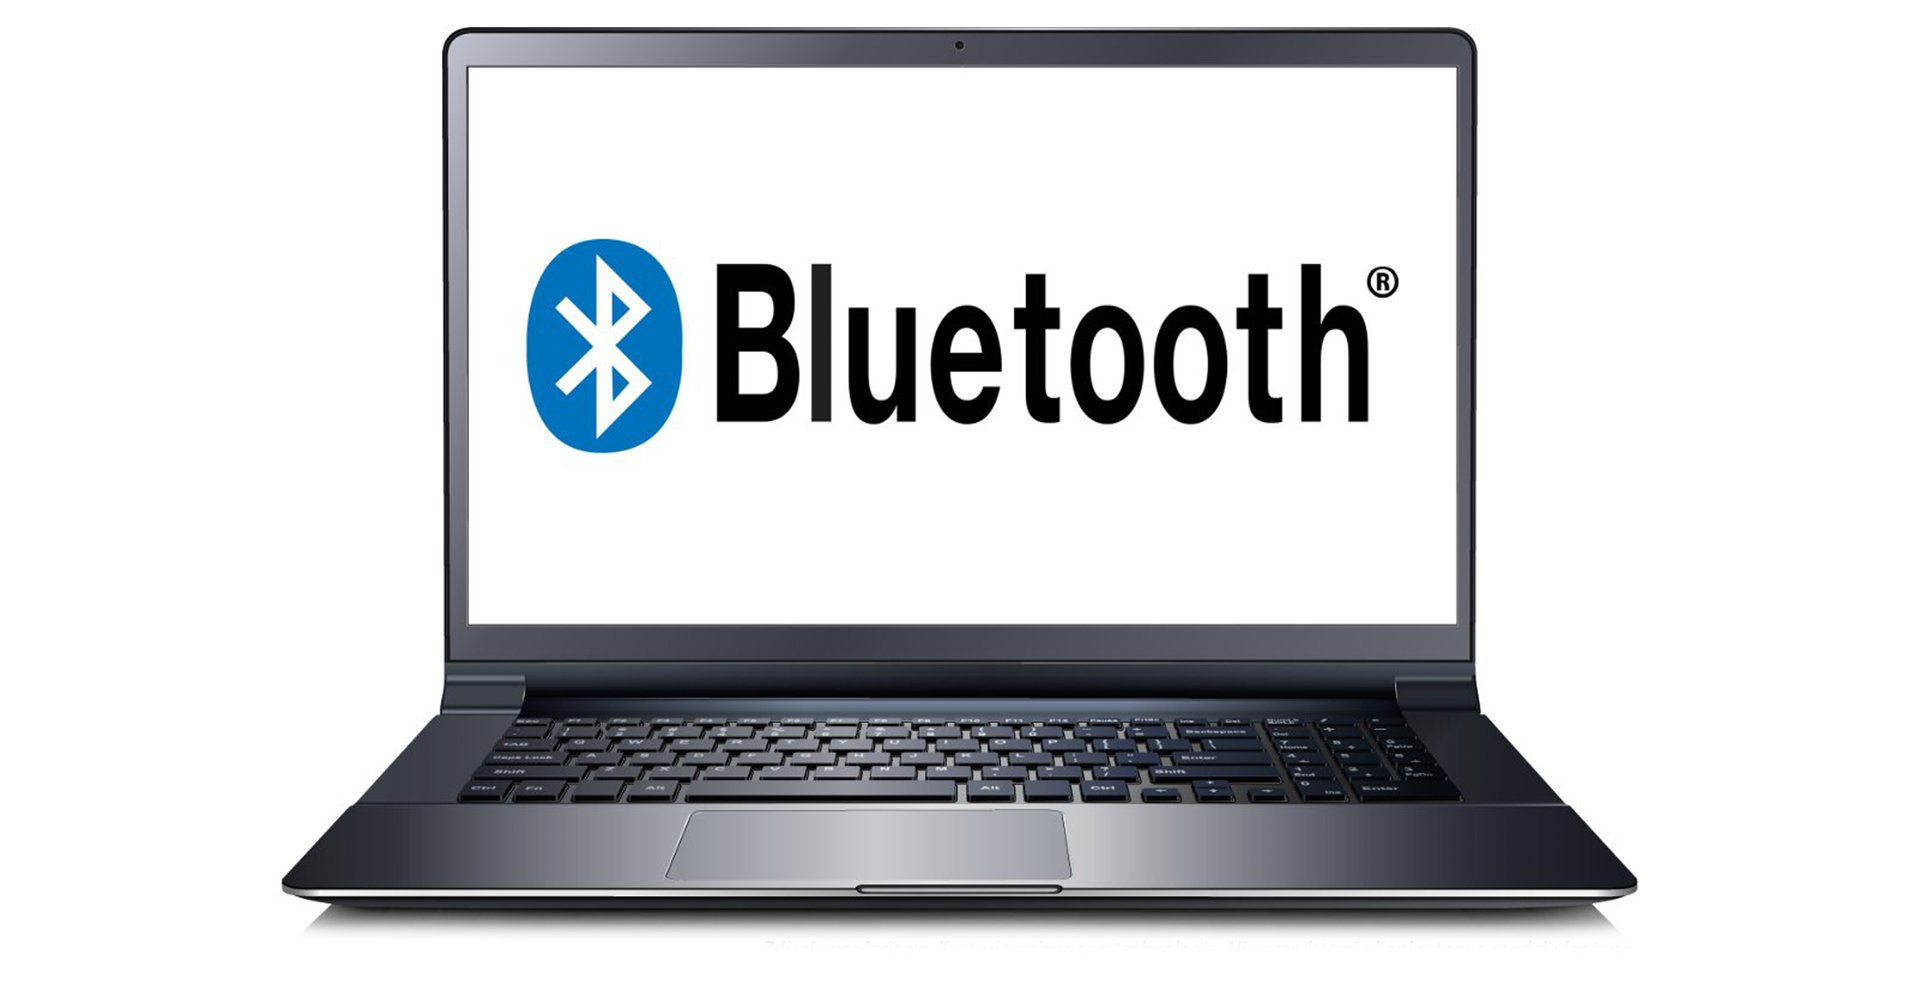 Lenovo Ideapad 330-15 (81DE01UTPB)                             Bluetooth